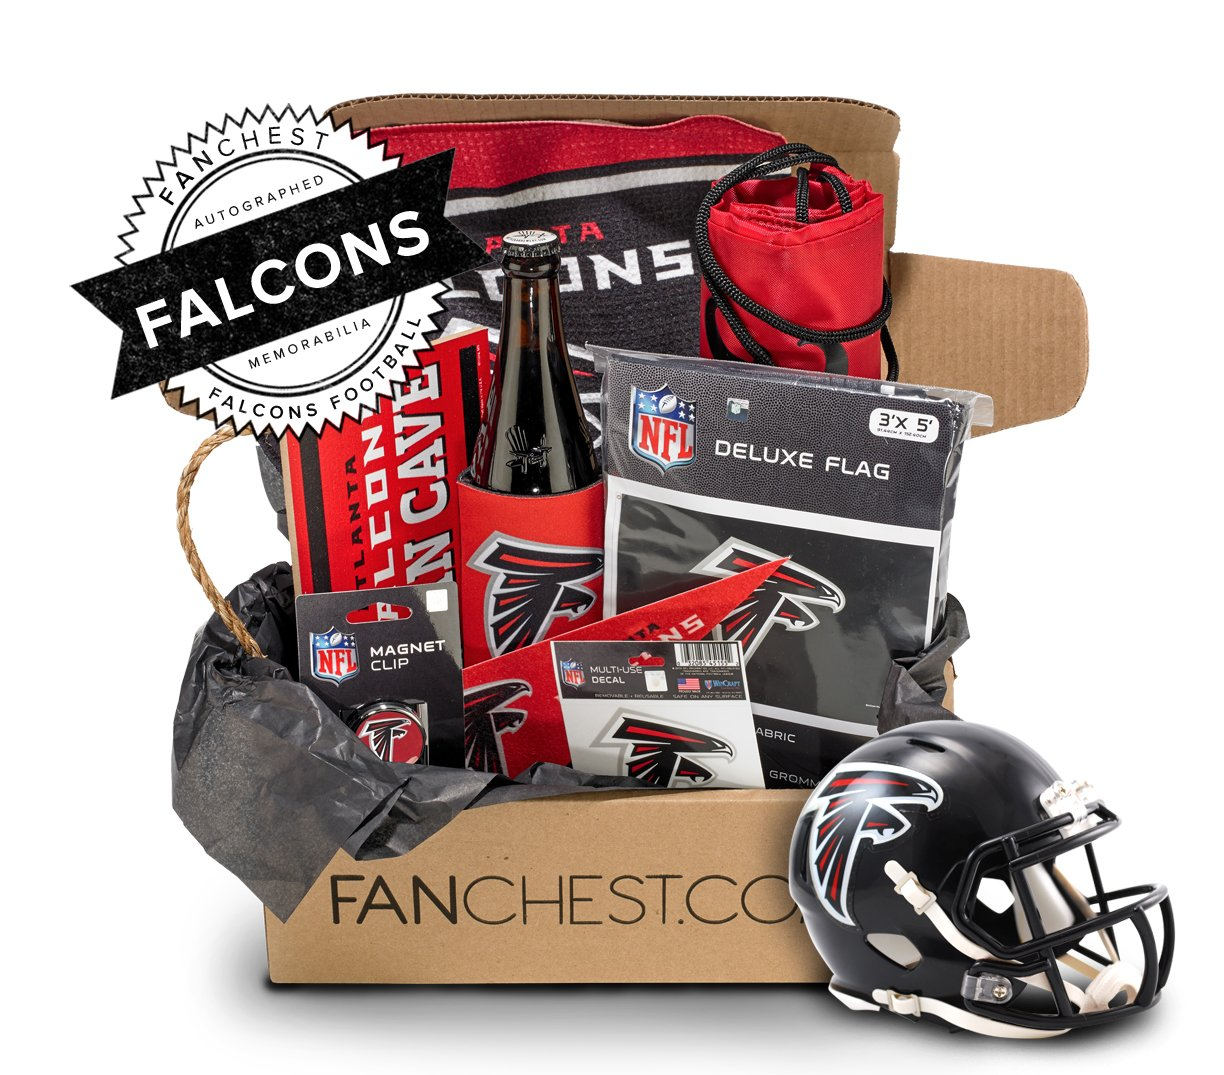 Atlanta Falcons Memorabilia Gift Box Signed Mini Helmet Included Atlanta Falcons Gifts Atlanta Falcons Atlanta Falcons Gear